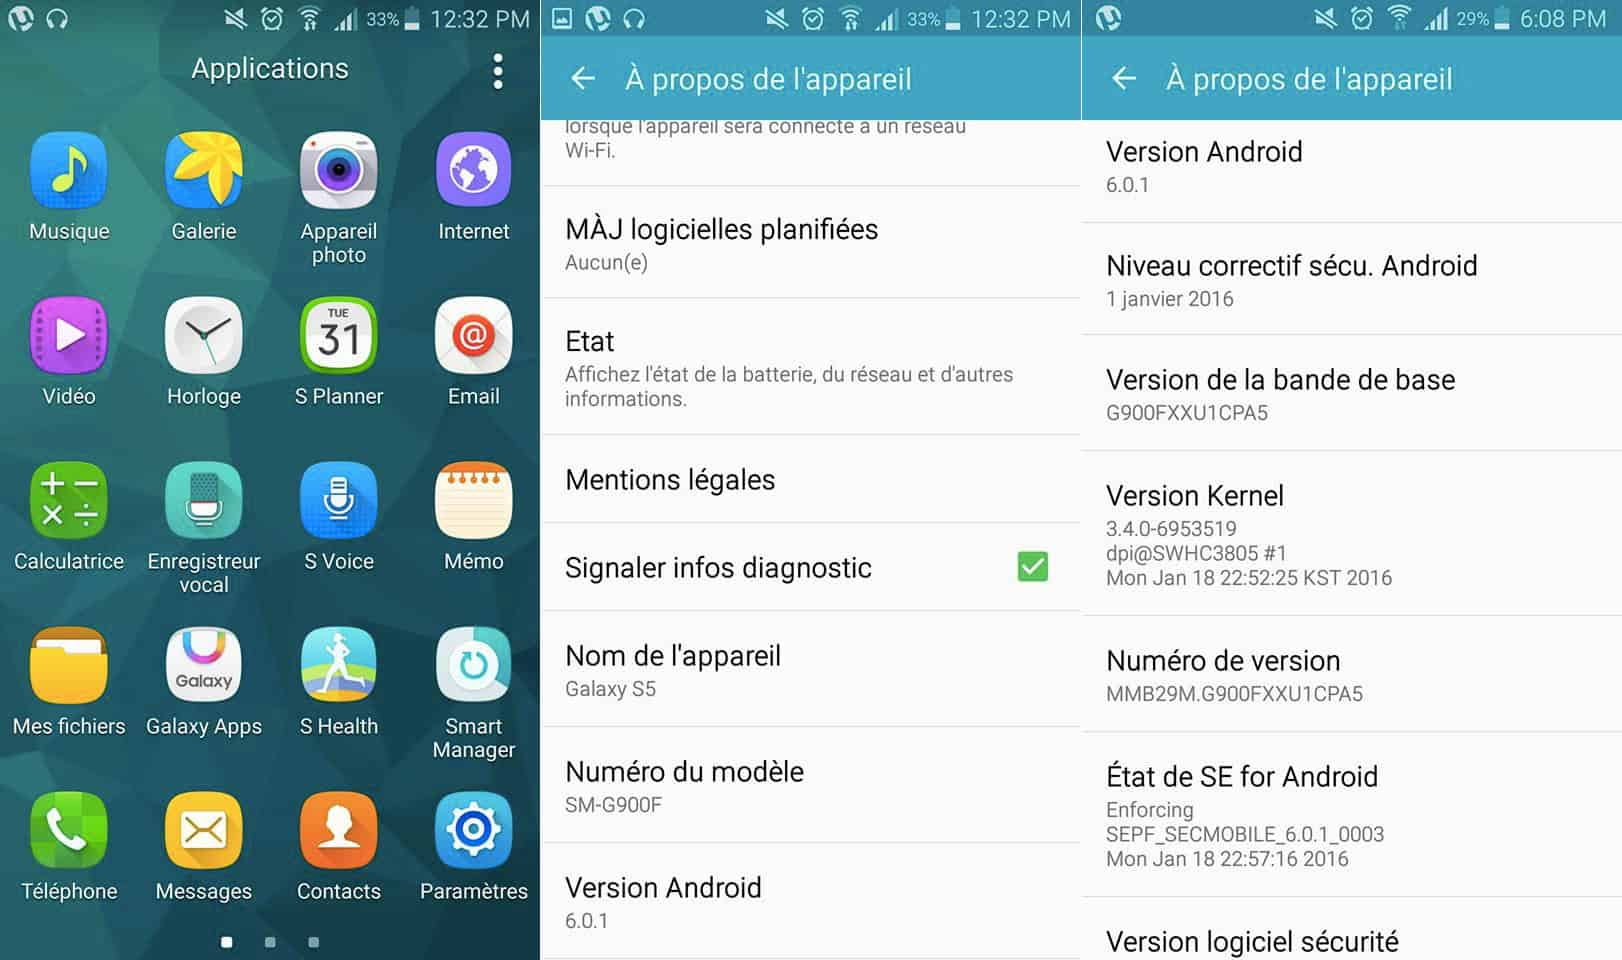 samsung-galaxy-s5-android-6-marshmallow-preview-update Android 6.0 Marshmallow opnieuw op Galaxy S5 opgedoken